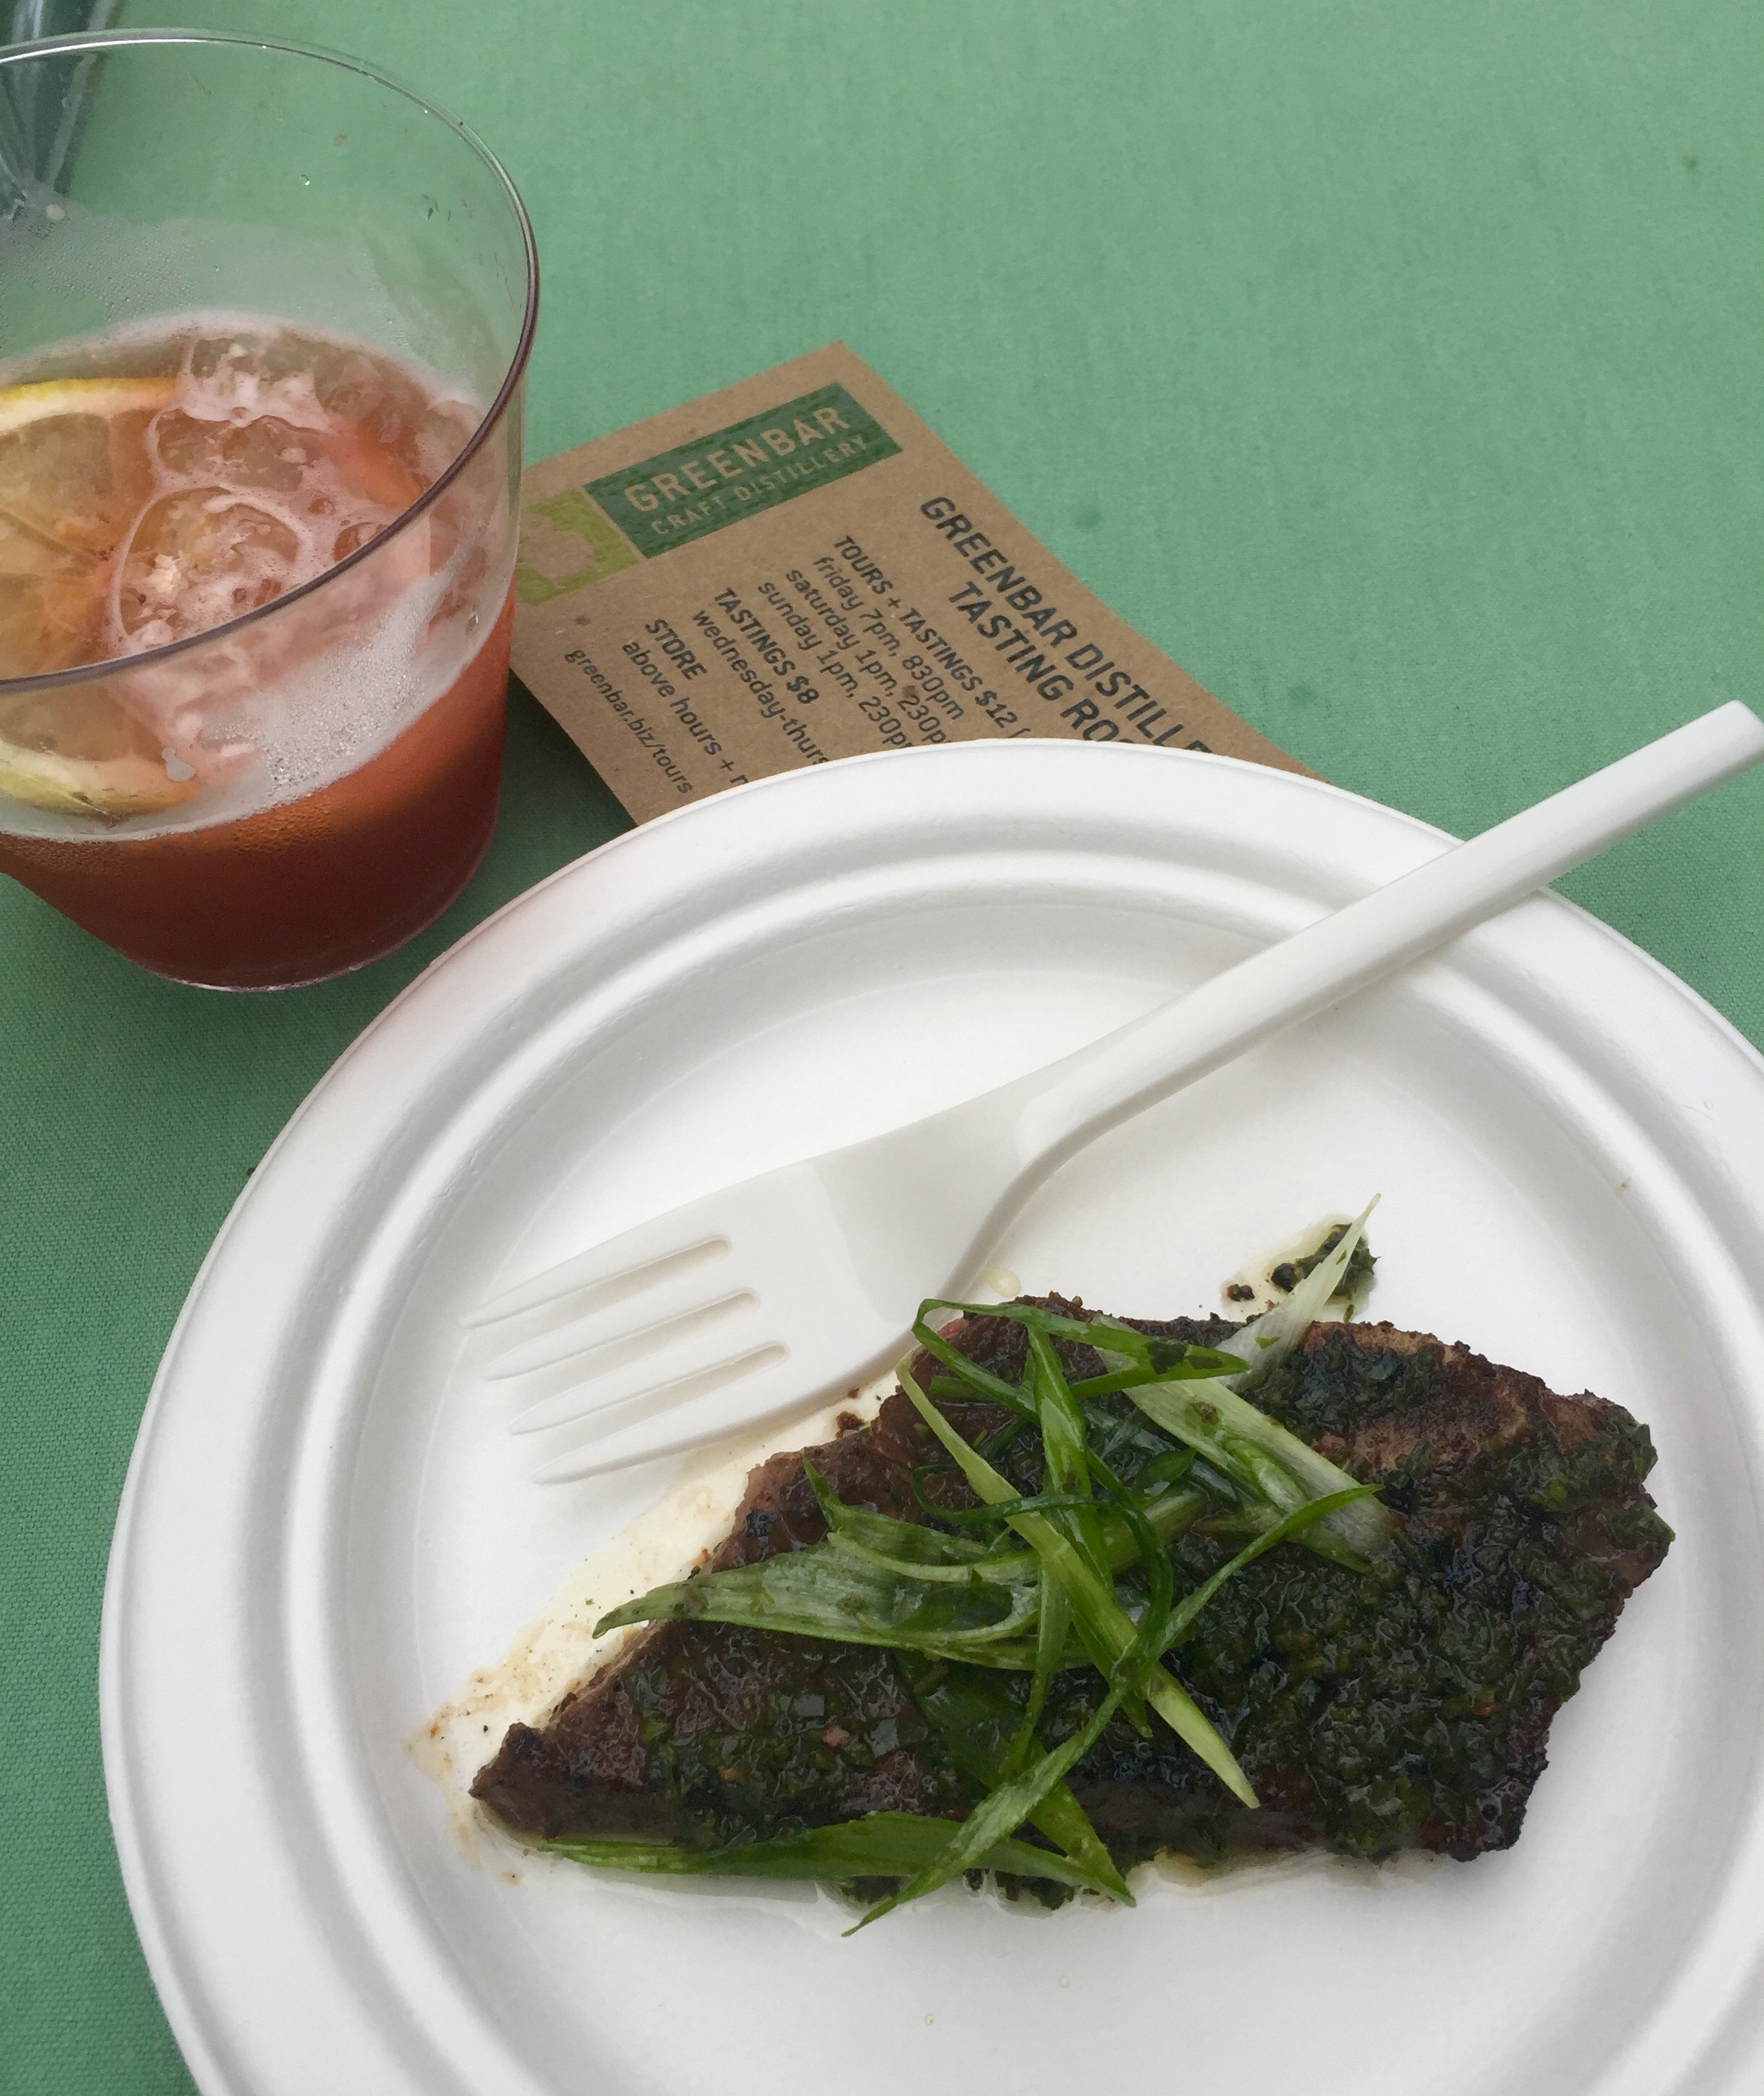 Delectable Porcini Rubbed Short Ribs with Salsa Verde and Scallions from Spacca.